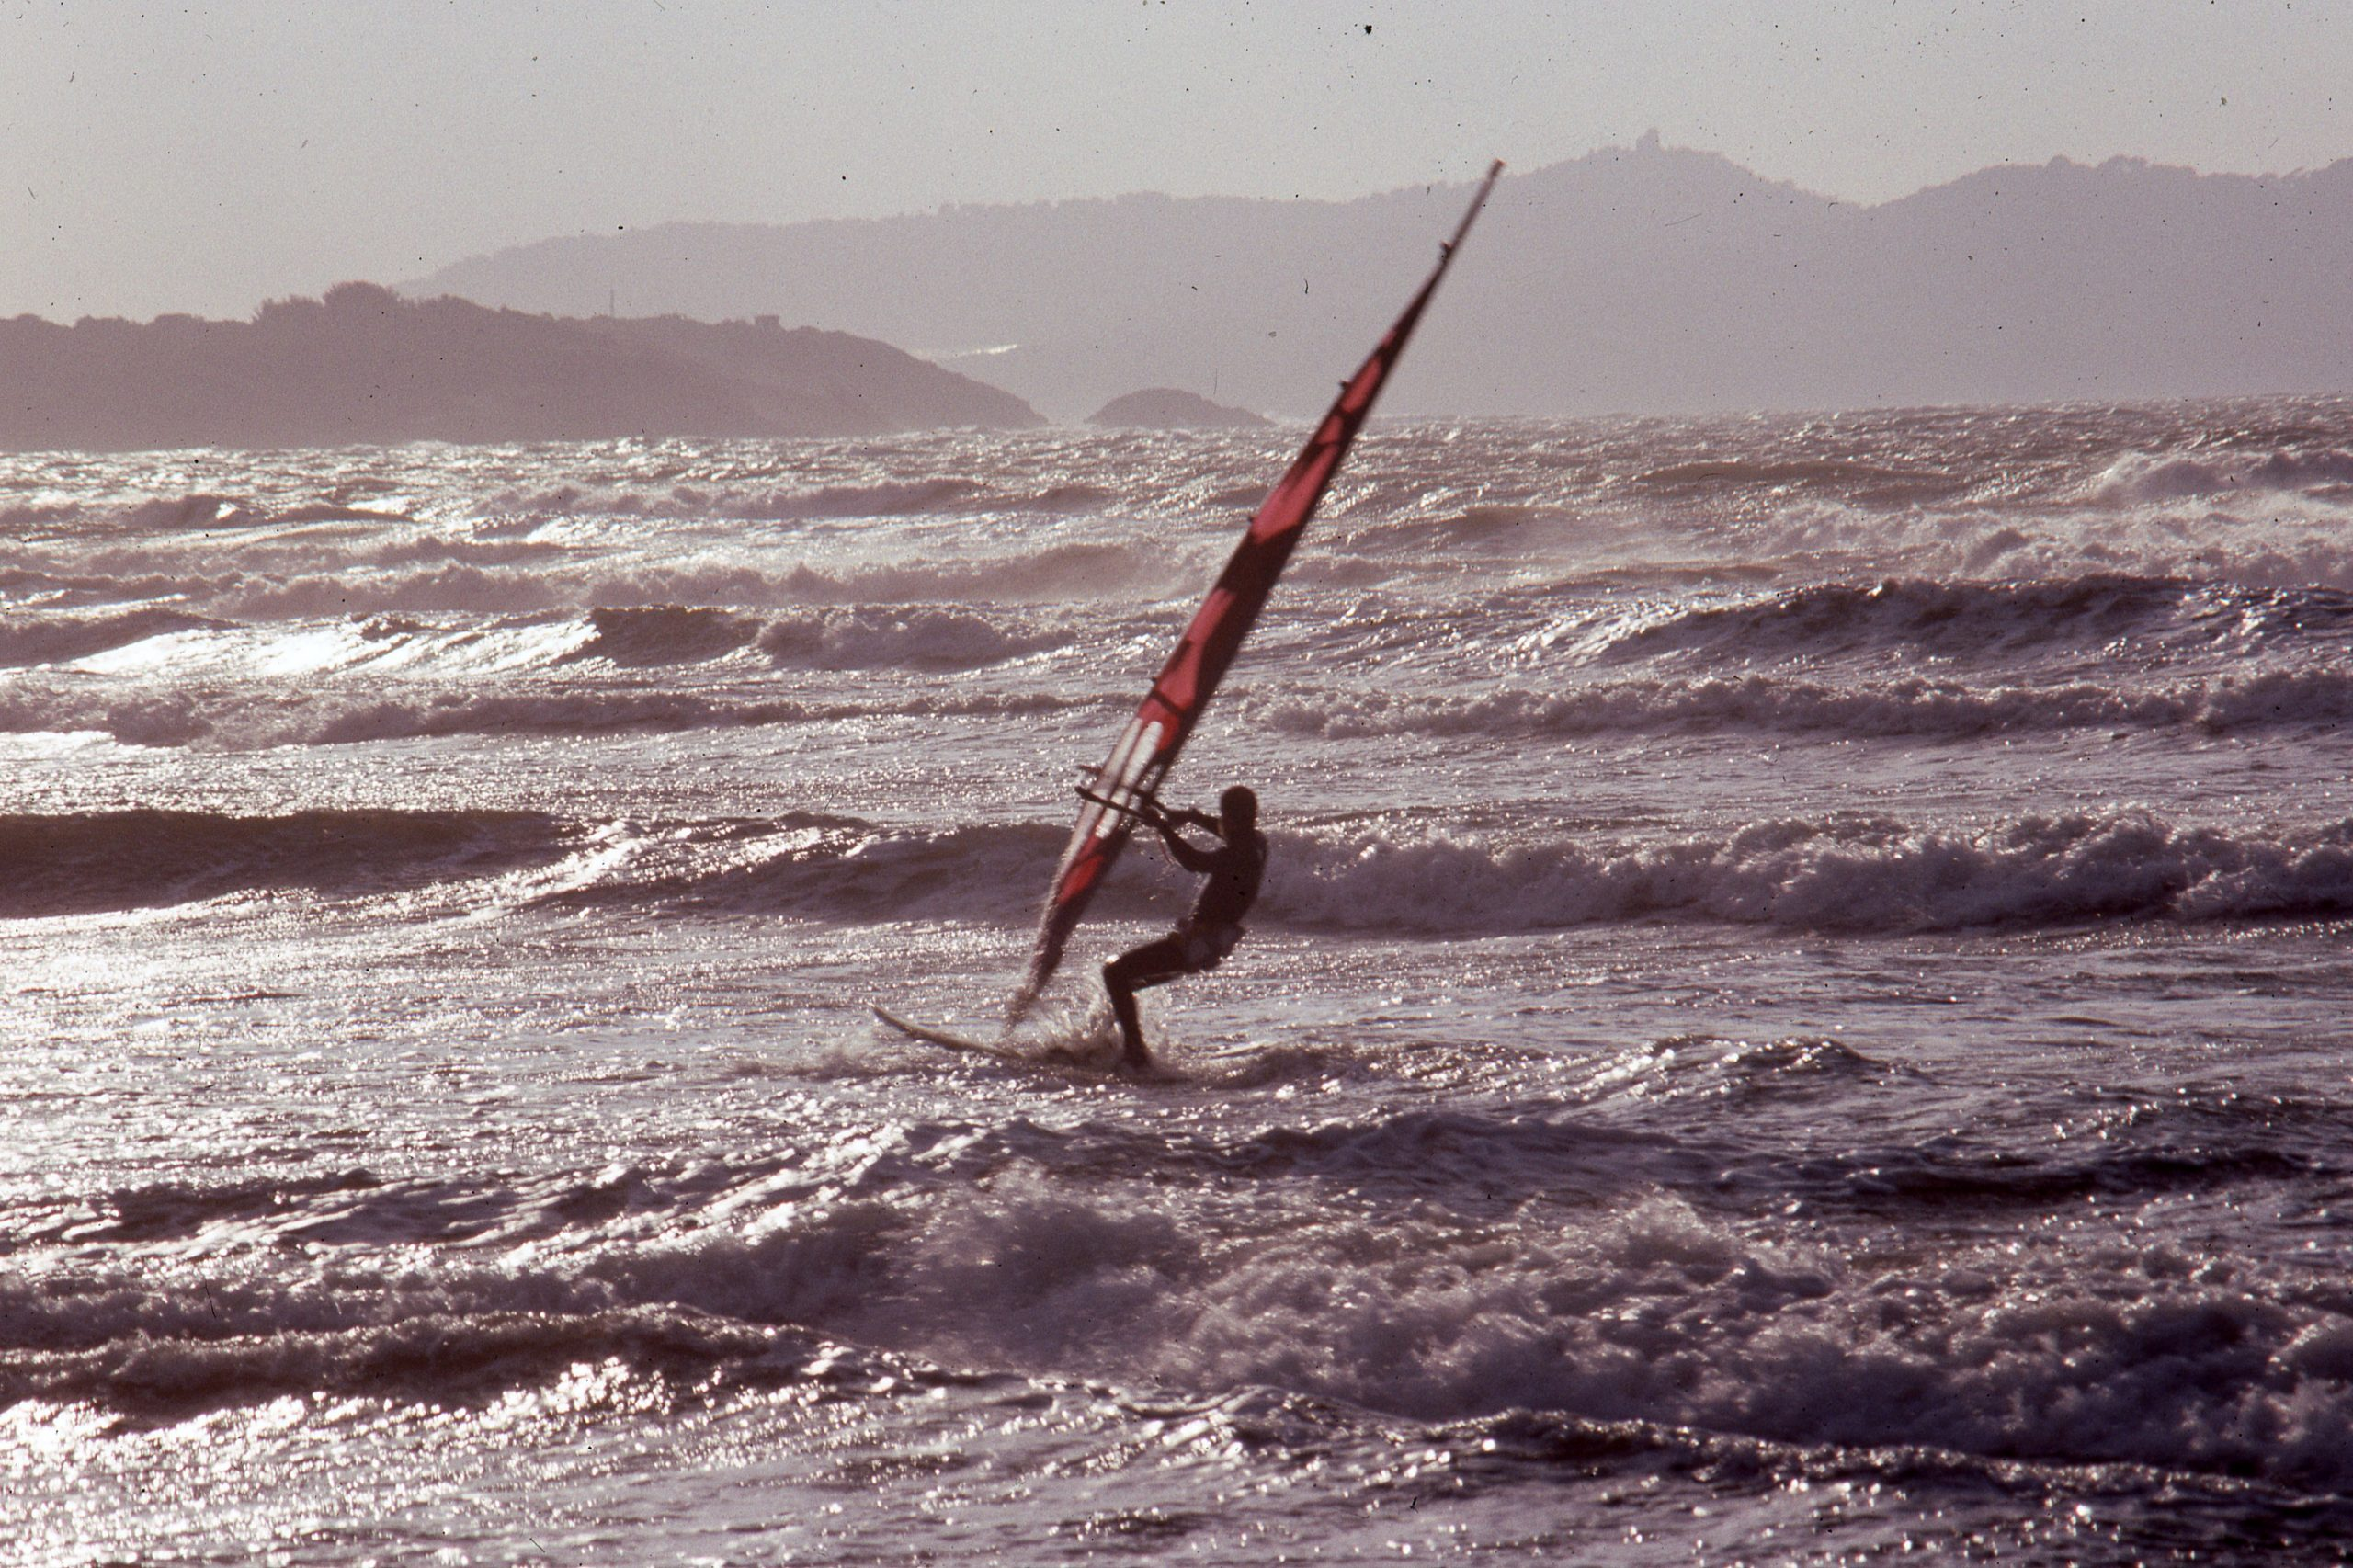 Windsurfing during cold weather in South France